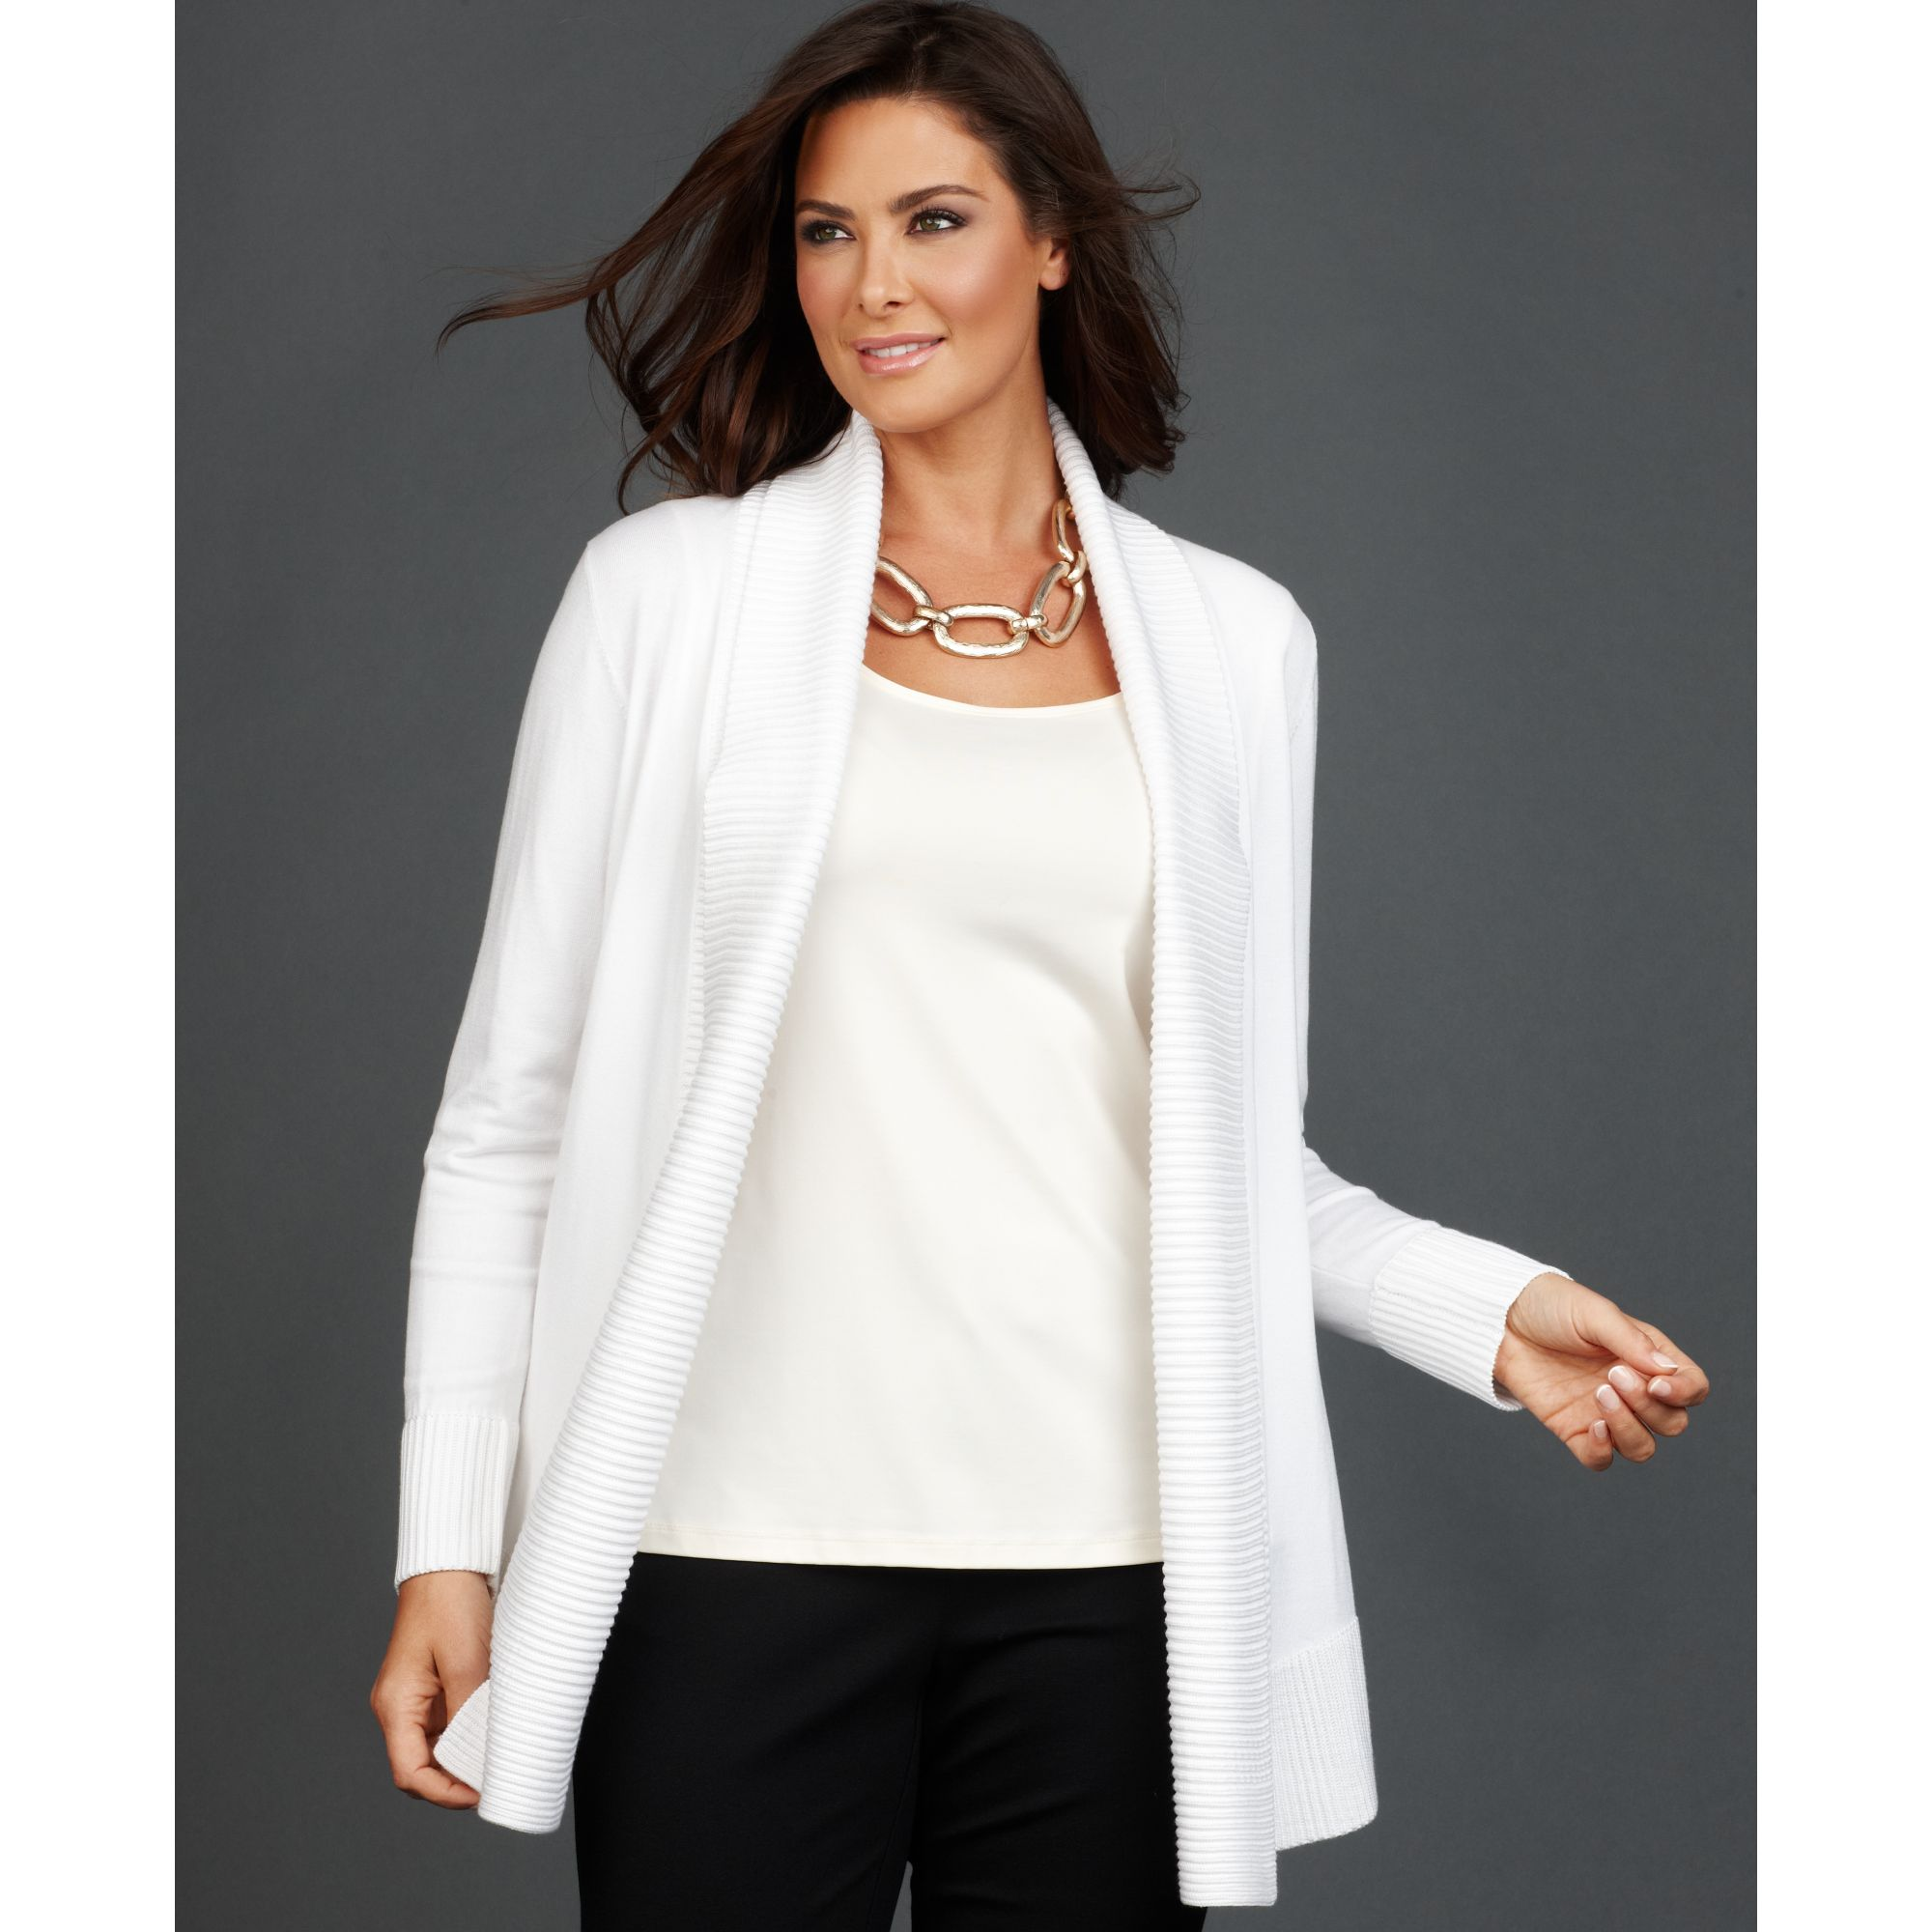 Lyst - Inc International Concepts Long Sleeve Open Front ...